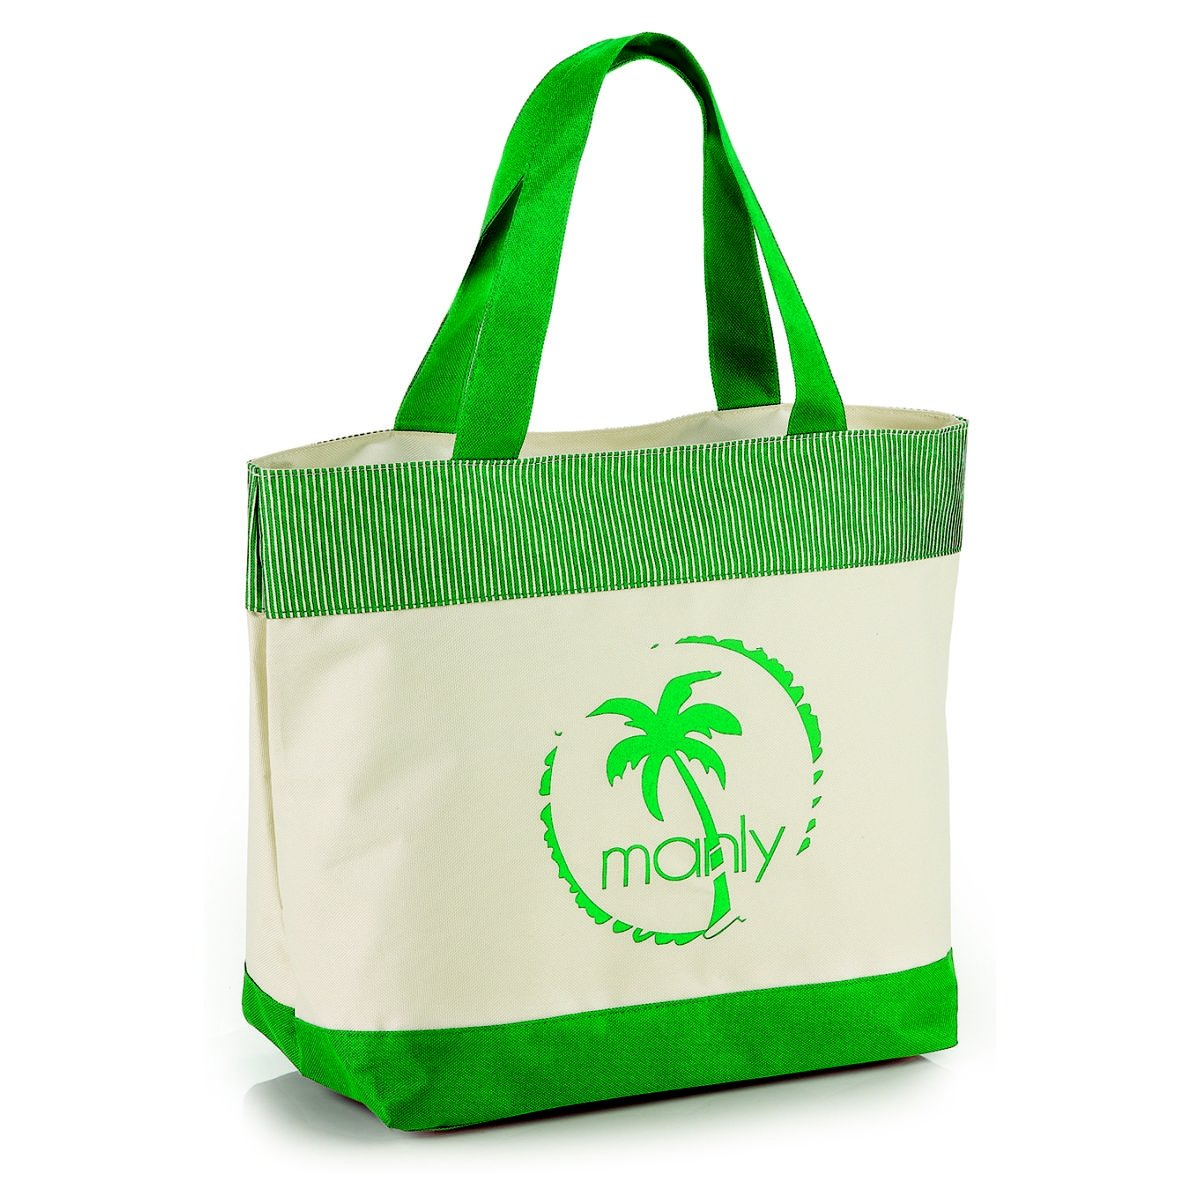 Praia Manly Bolsa Manly Bolsa Praia Bolsa Verde Bolsa Bolsa Manly Praia Verde Verde Praia Verde Manly 7qztxOwp